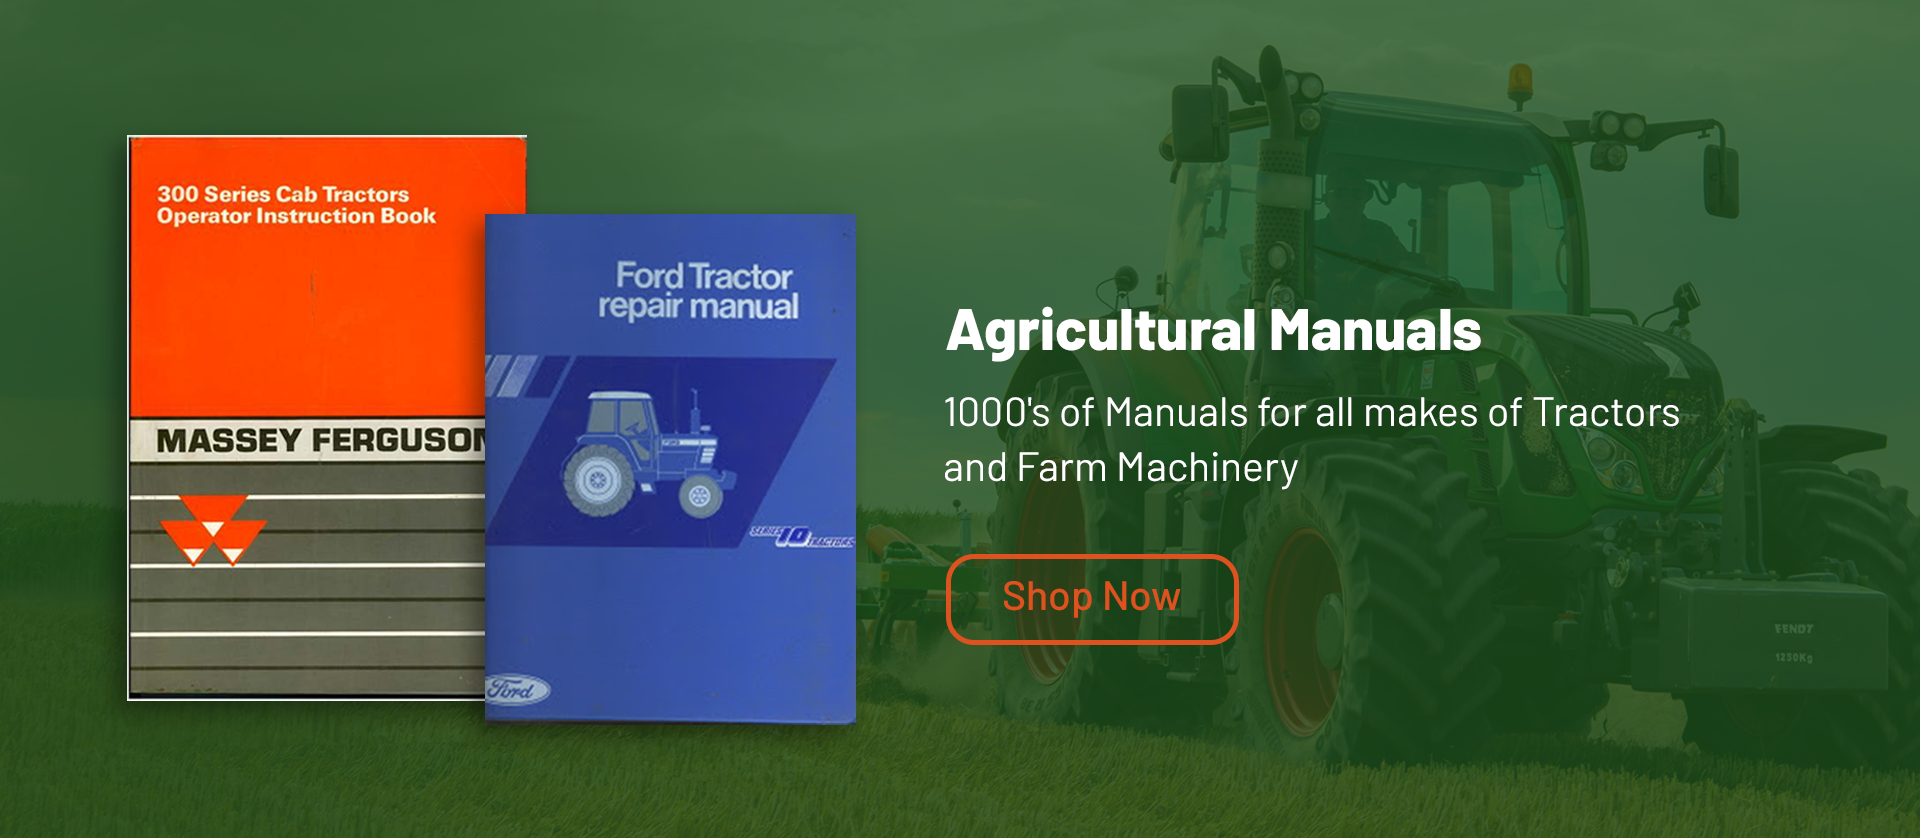 Agricultural Manuals